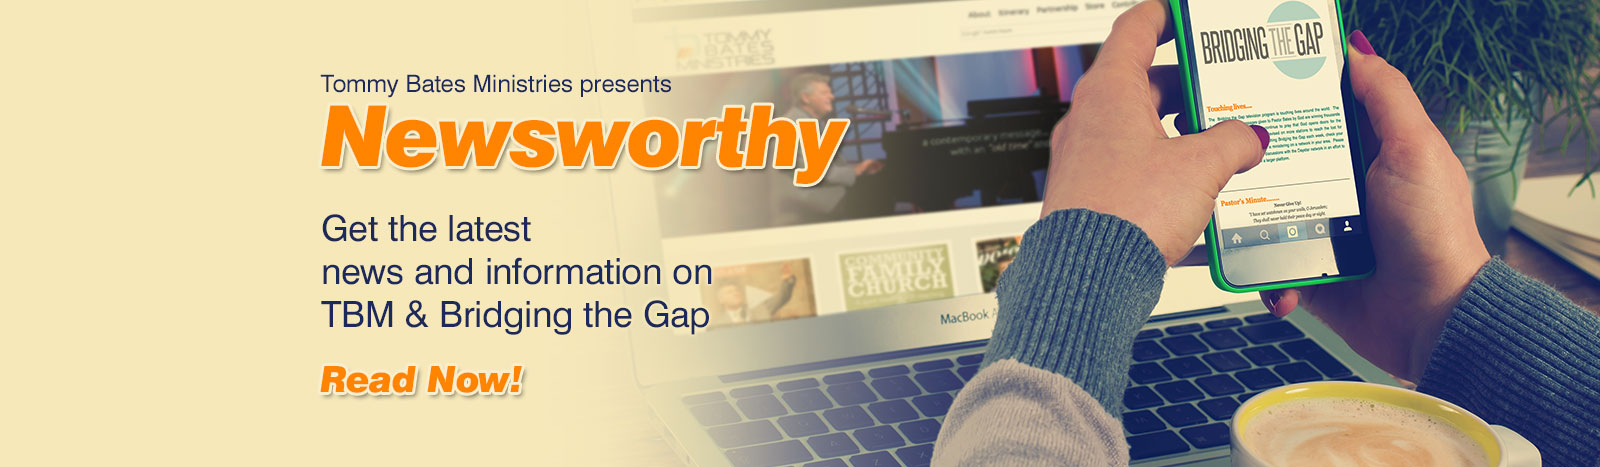 Newsworthy a publication by Tommy Bates Ministries